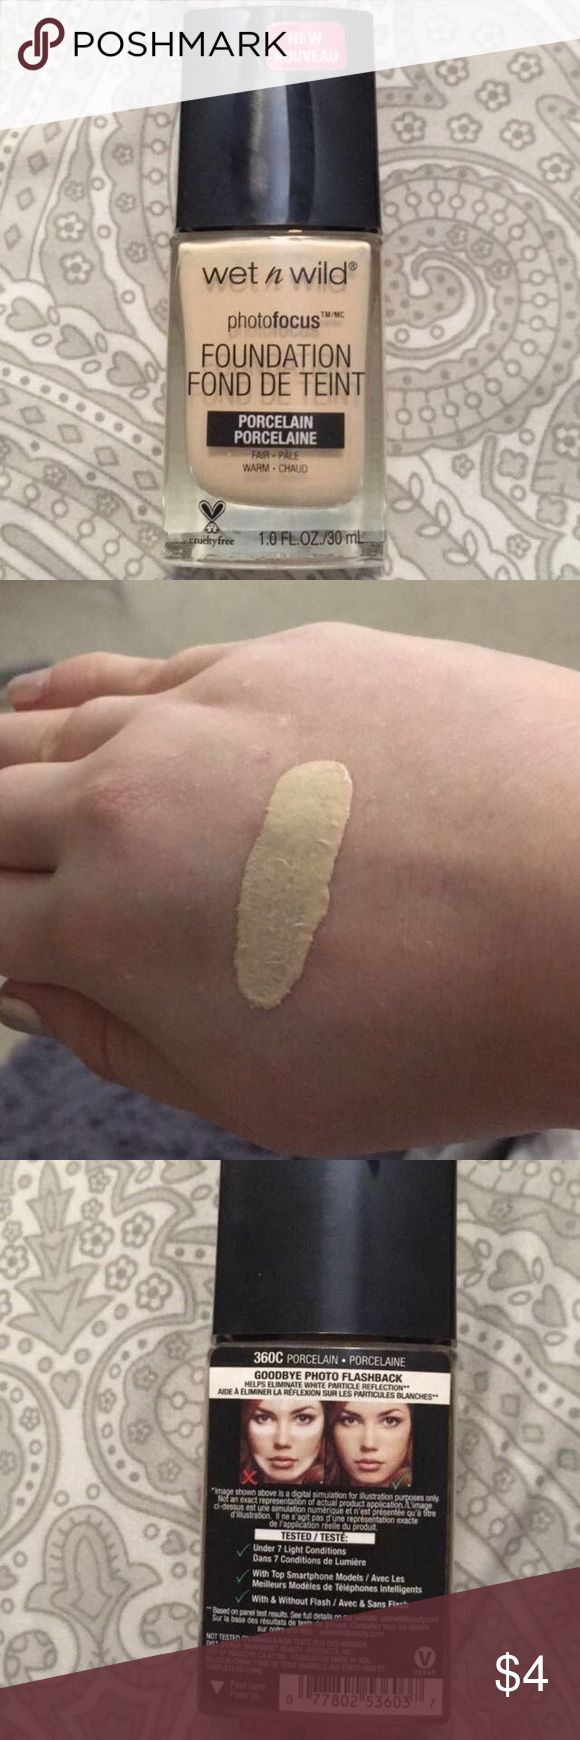 Wet N Wild Photofocus foundation Wet N wild photofocus foundation in the shade 360C Porcelain. This foundation claims to help eliminate flashback, flawless and build-able coverage, and with a matte finish.                         This product is PETA certified and Vegan wet n wild Makeup Foundation